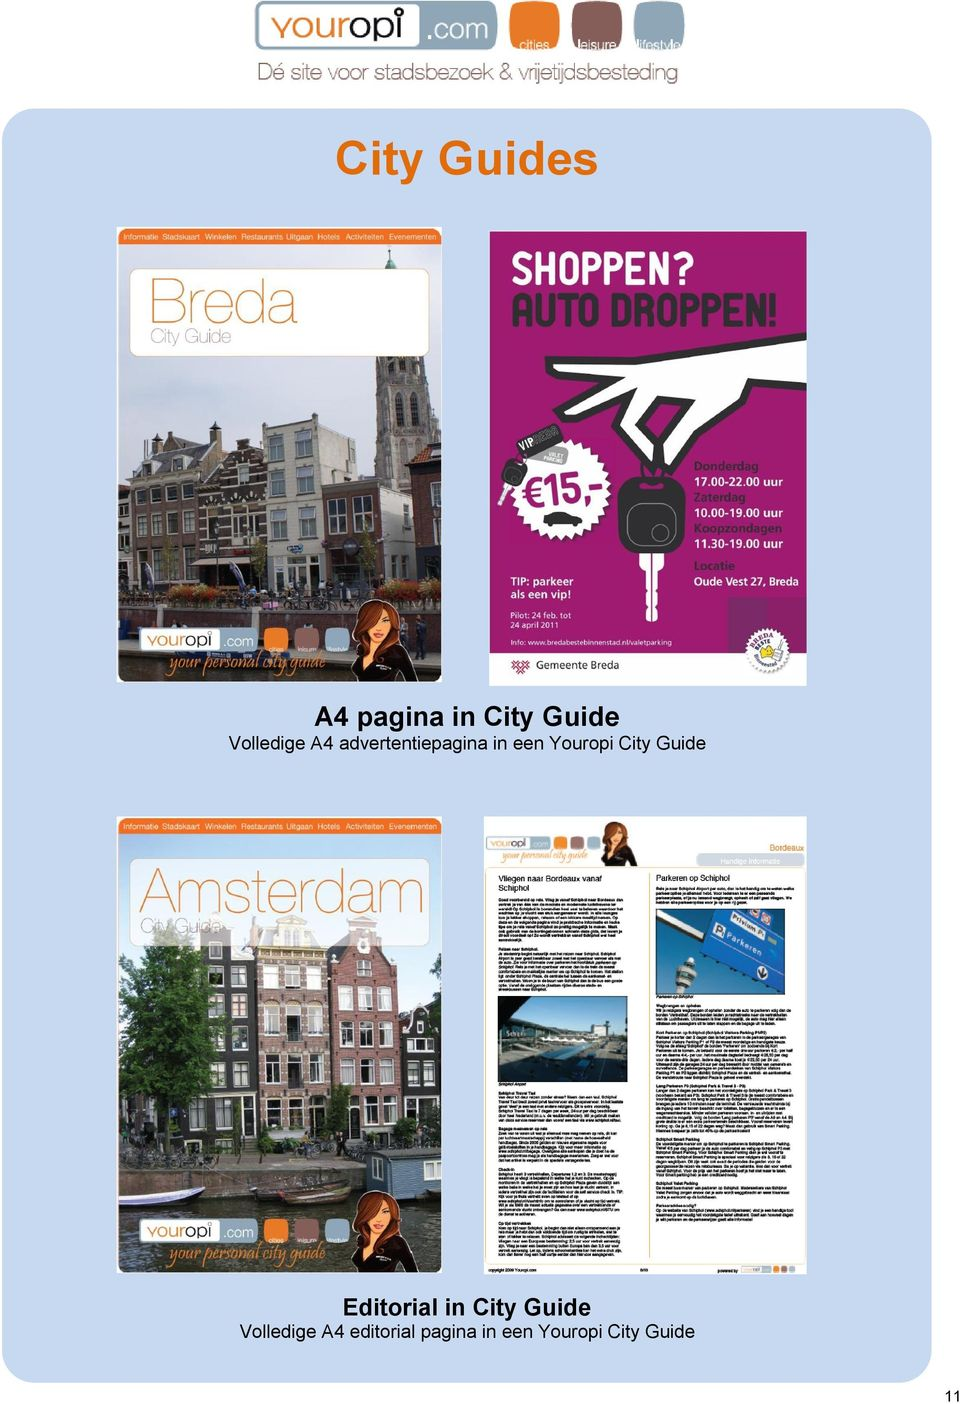 Youropi City Guide Editorial in City Guide